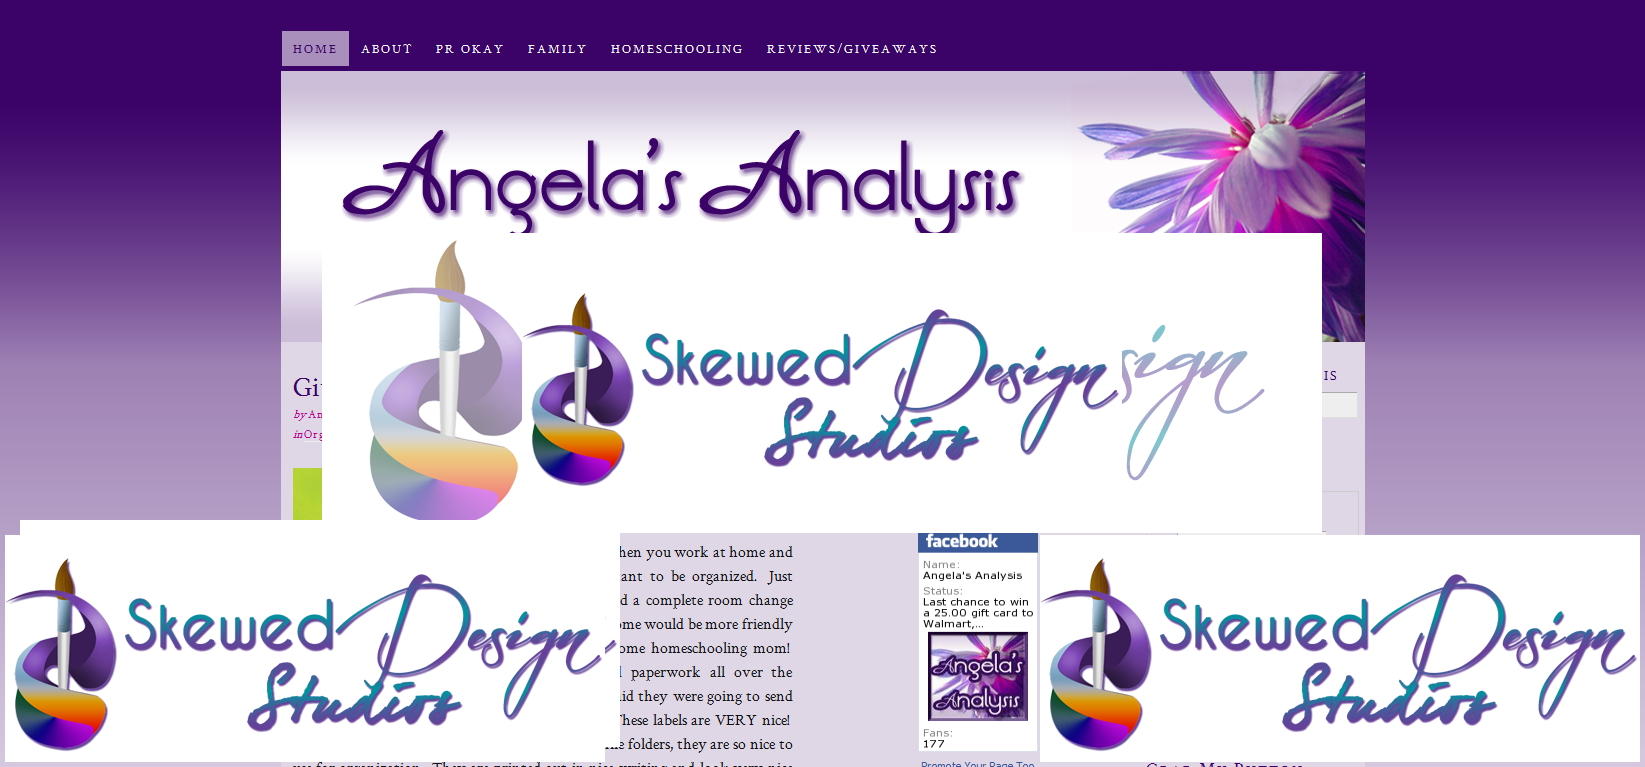 angelasanalysis